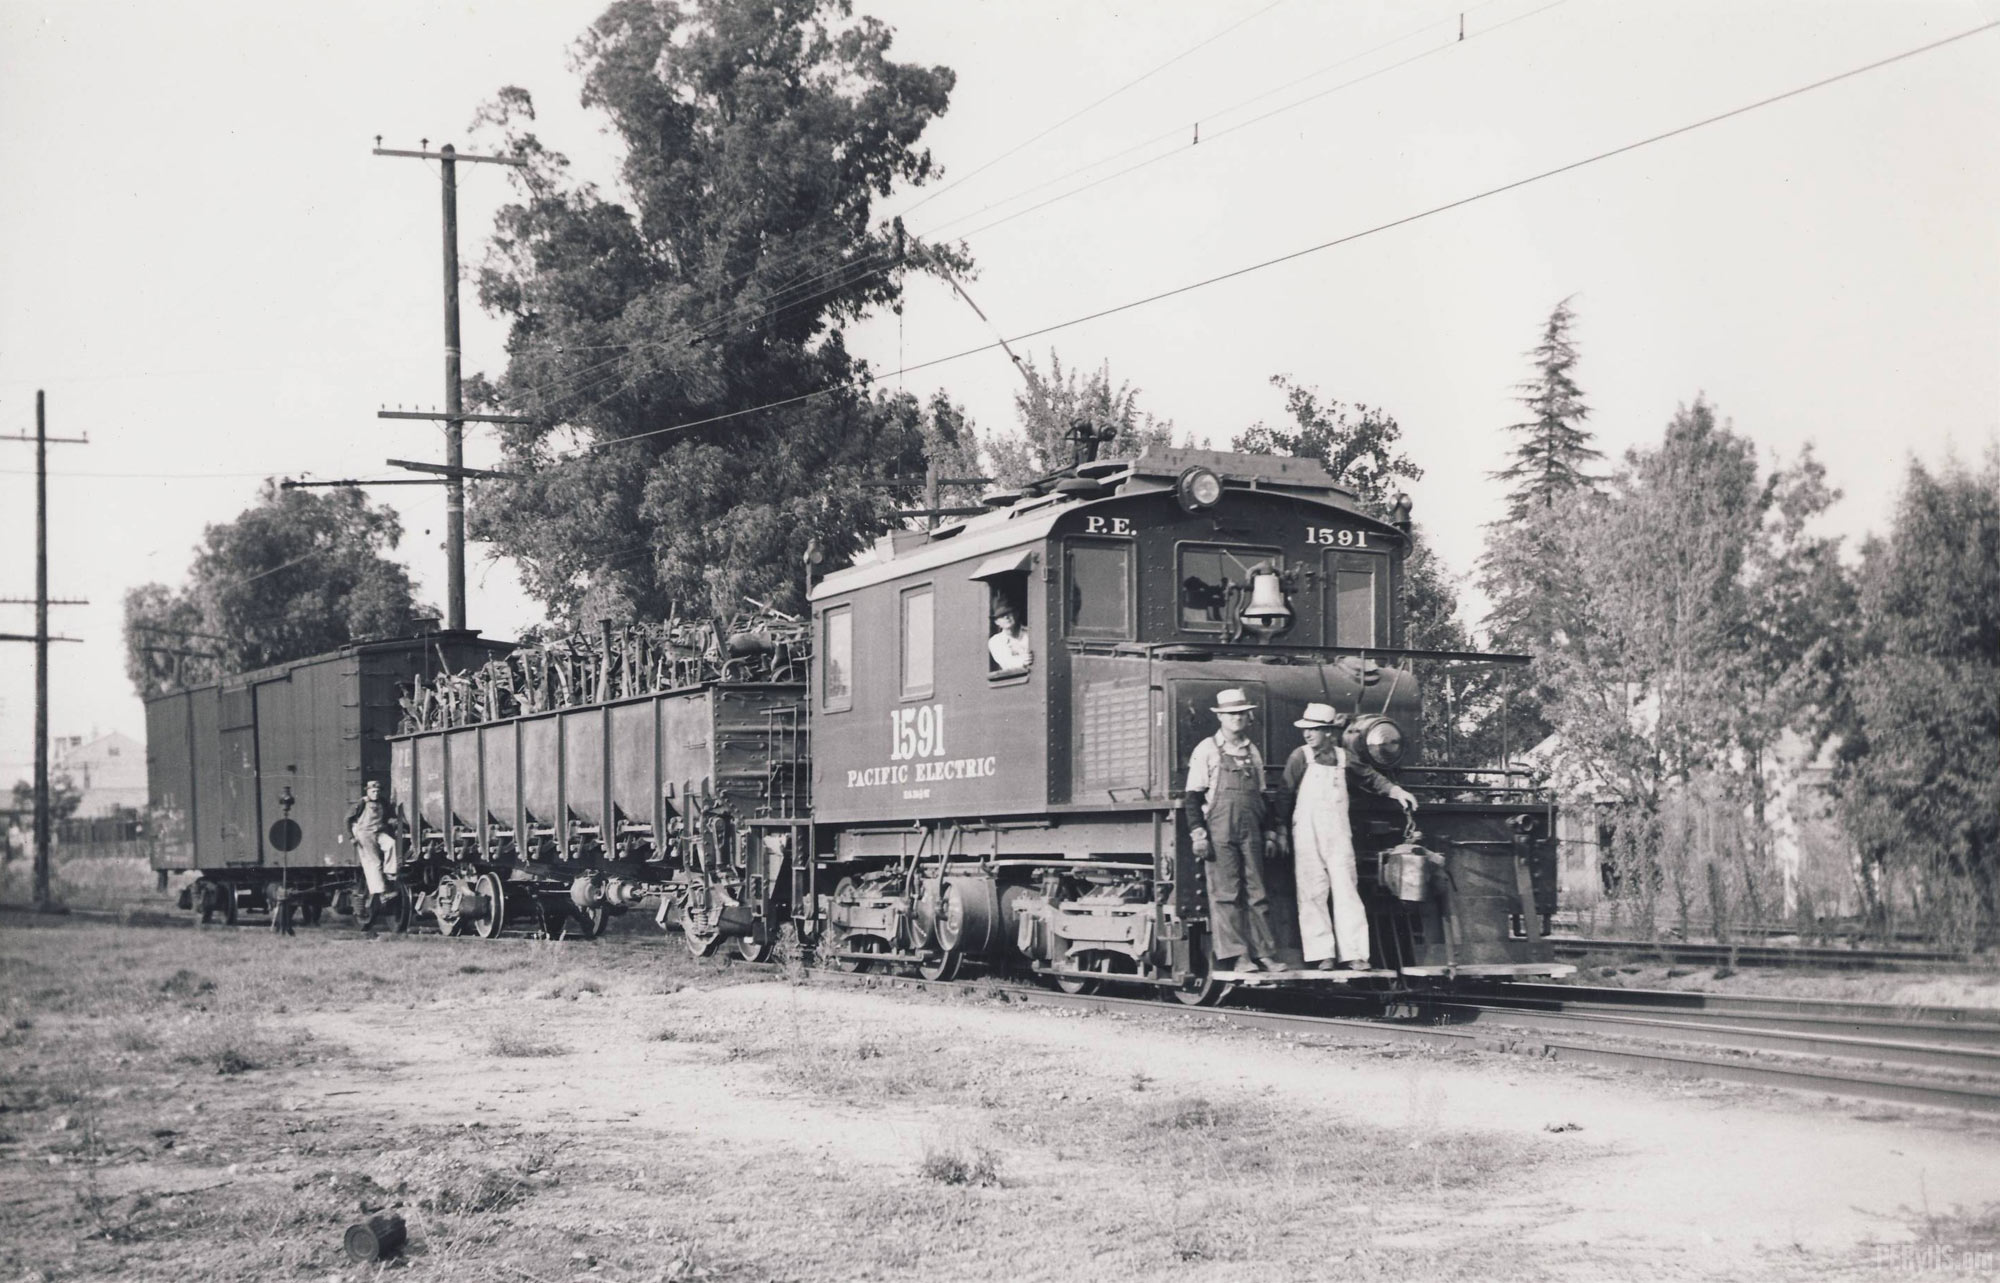 Jack Whitmeyer Photo, Mount Lowe Preservation Society Collection